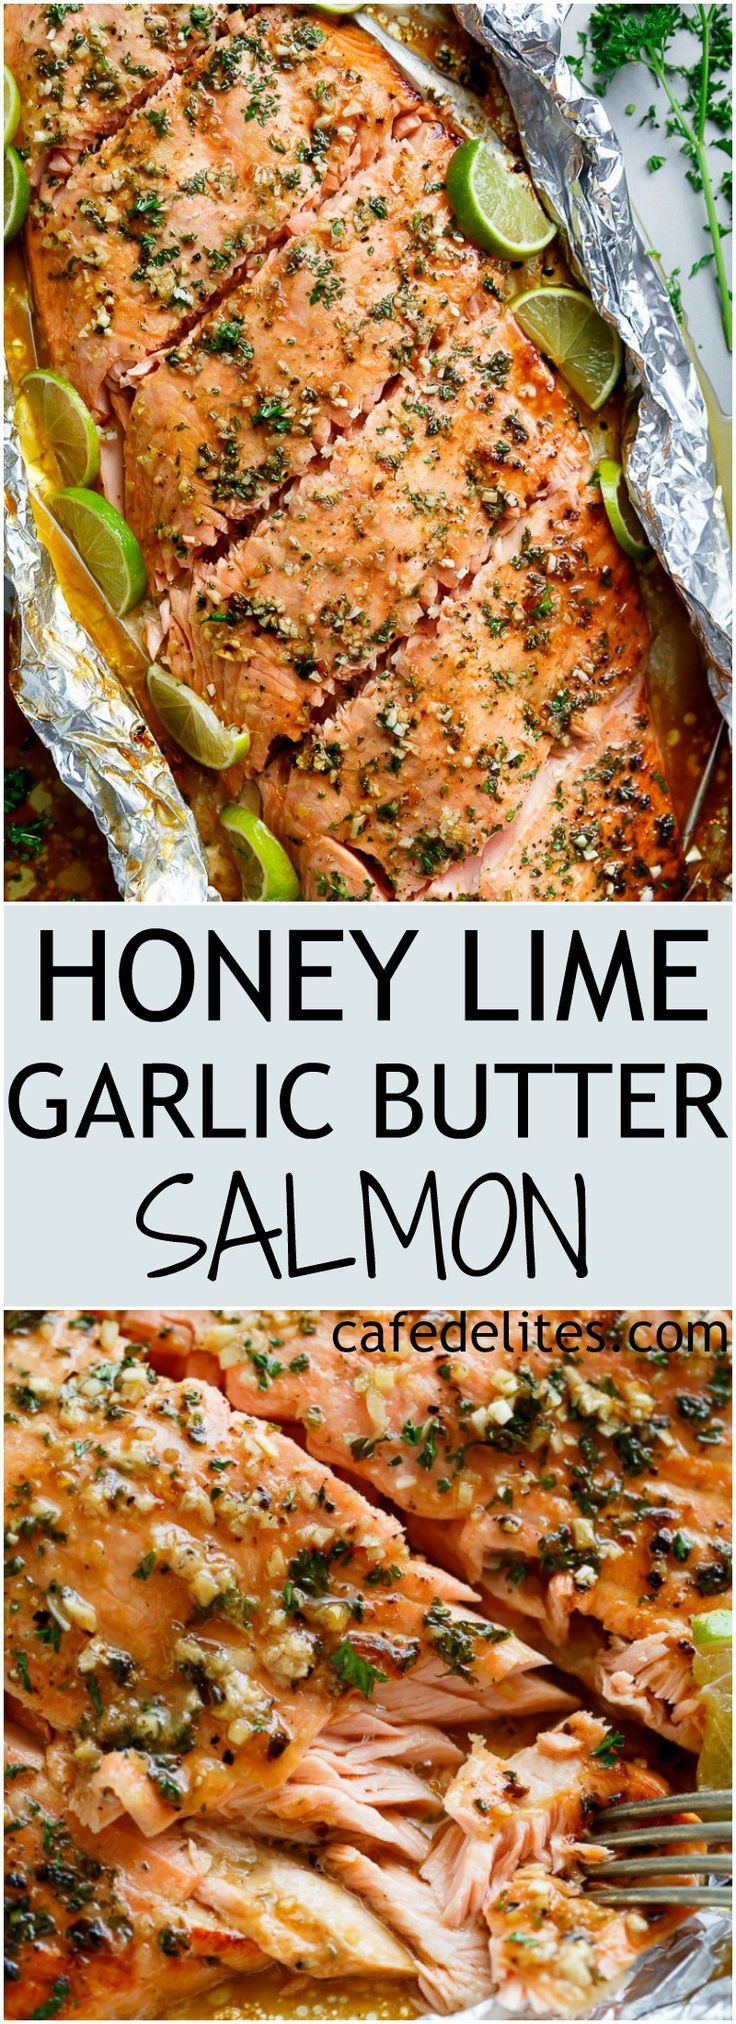 Honey Lime Garlic Butter Salmon in foil Is ready in under 30 MINUTES! Caramelized on the outside and falling apart tender on the inside!   https://cafedelites.com